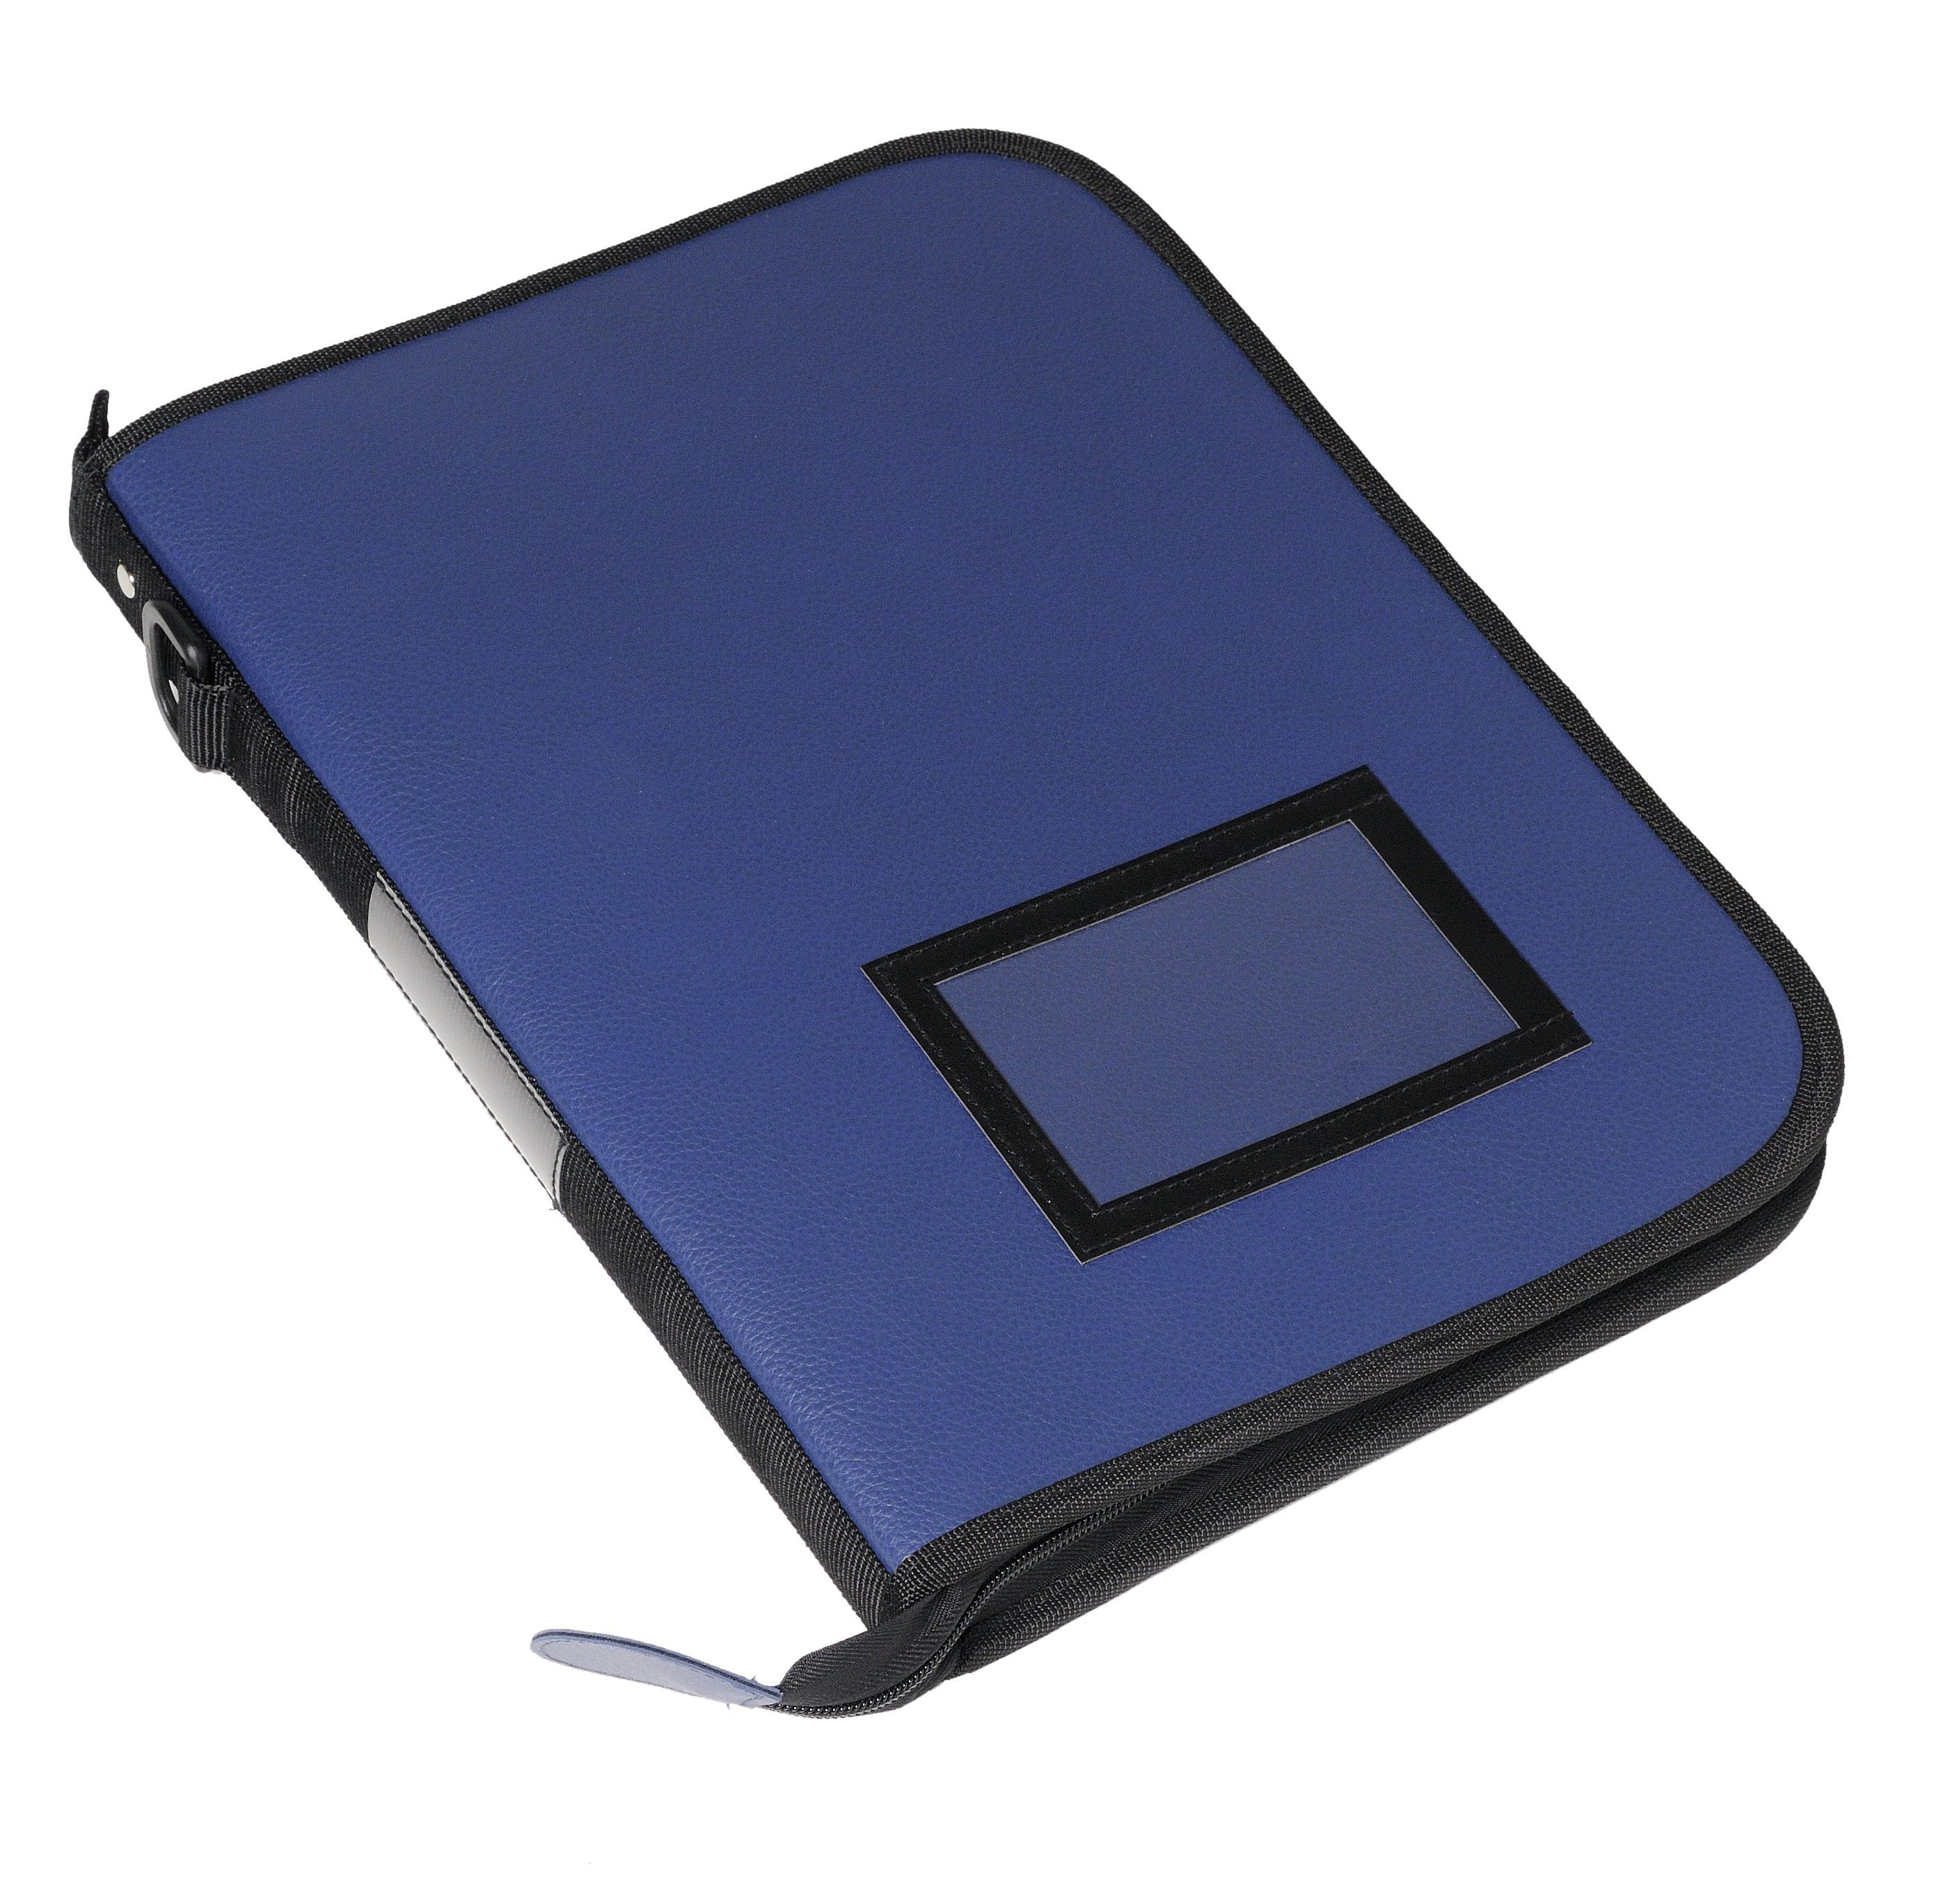 Porte Documents Vehicule Poids Lourds Pochette Porte Document - Pochette porte document